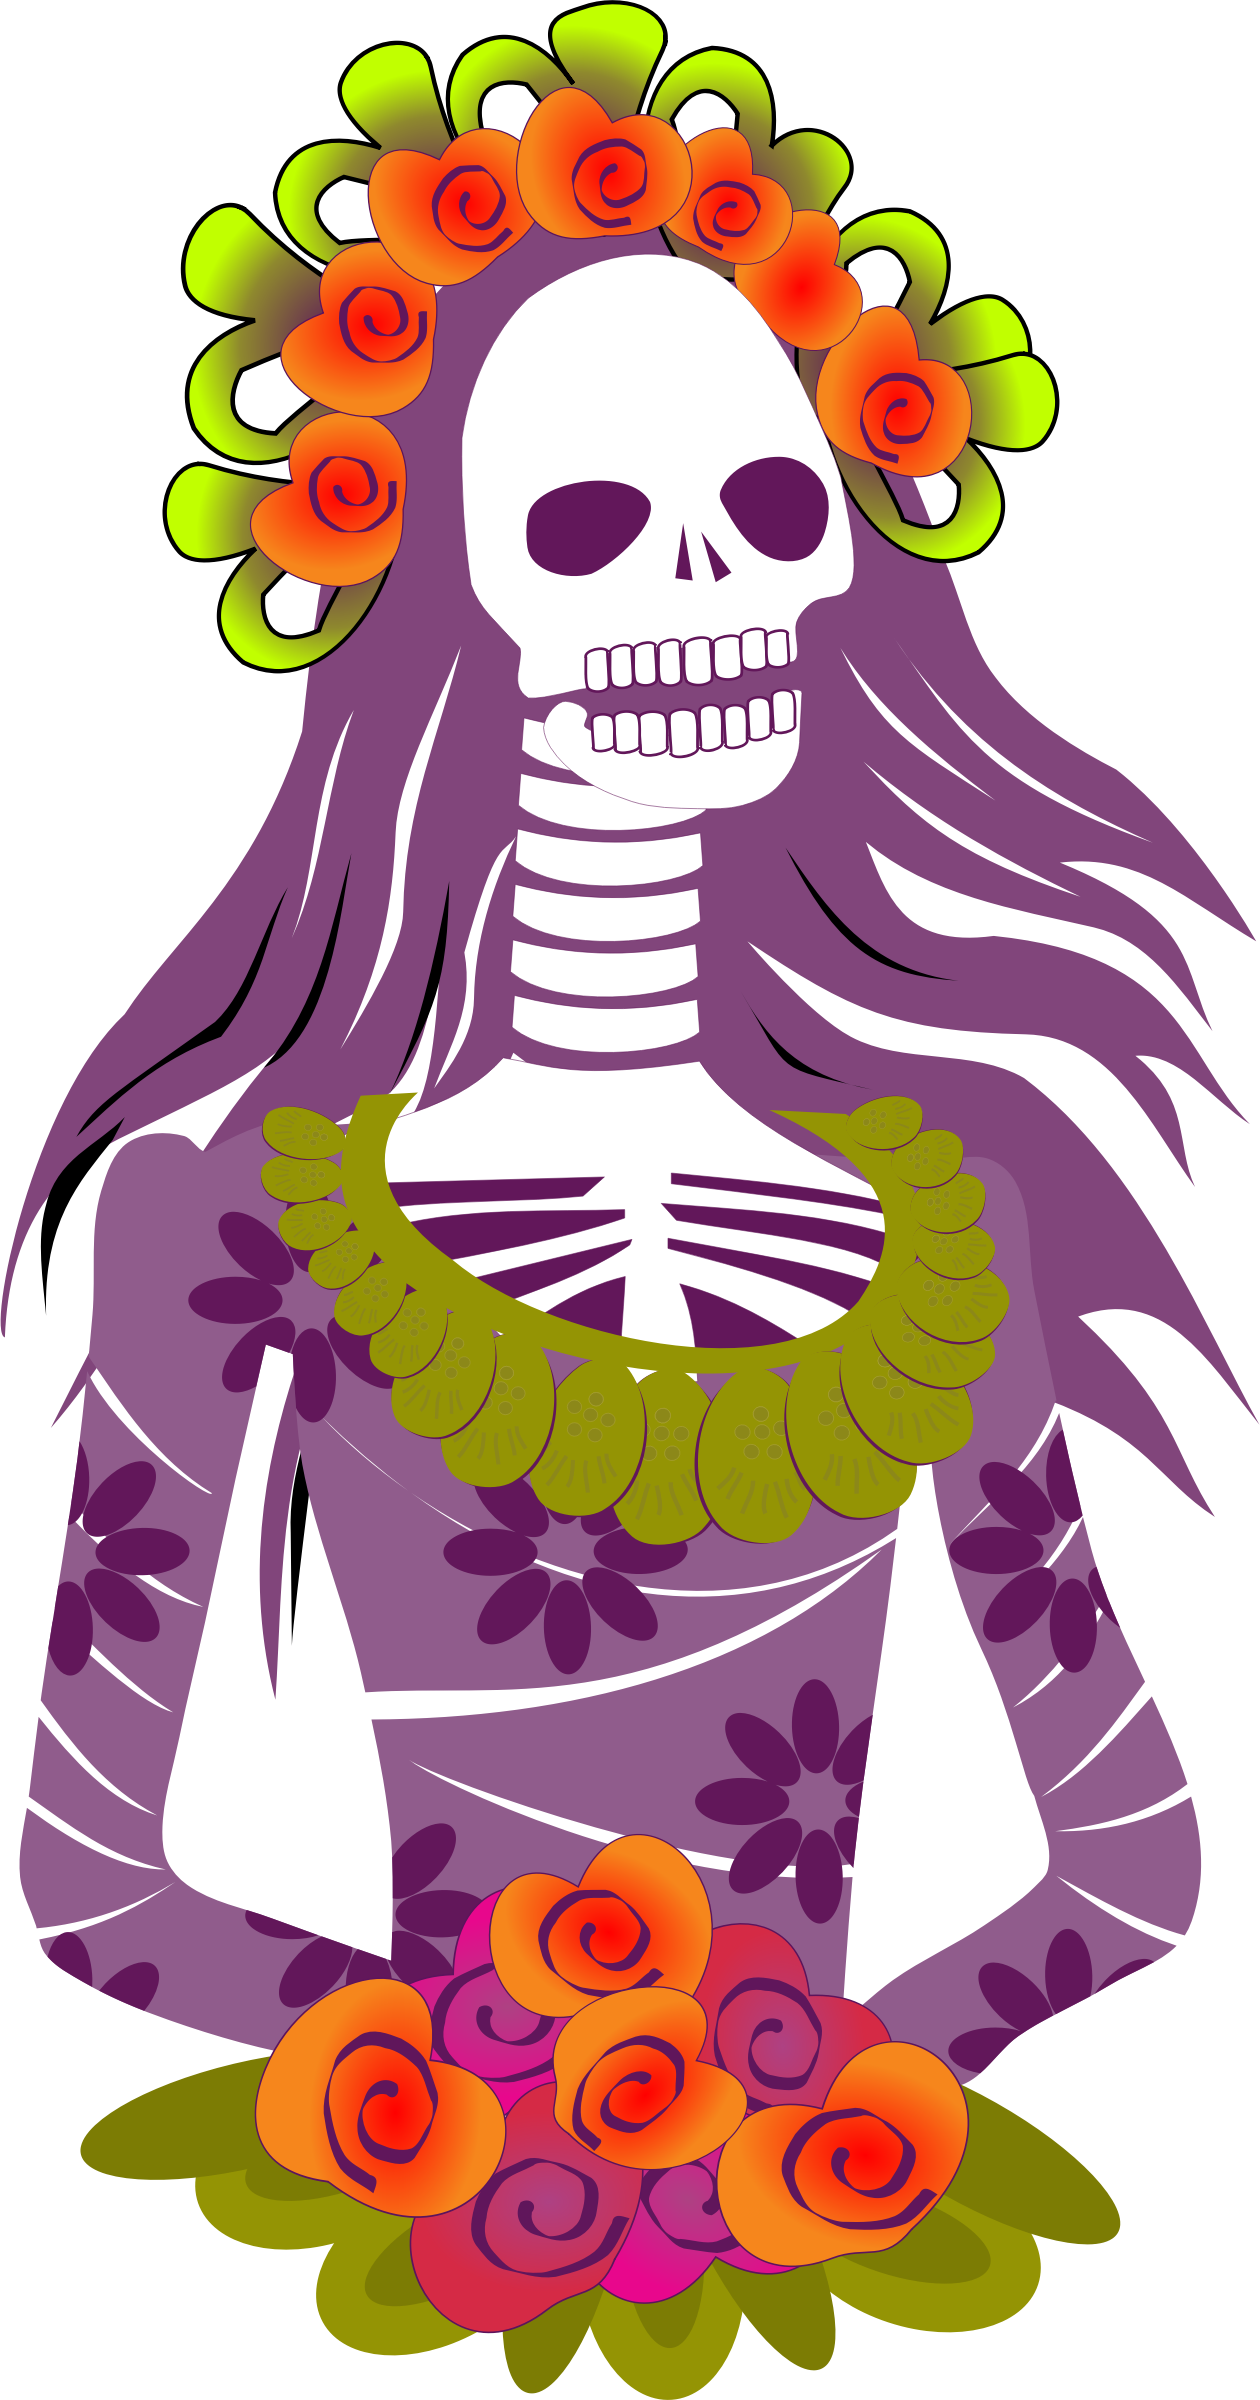 Calavera by stilg4r